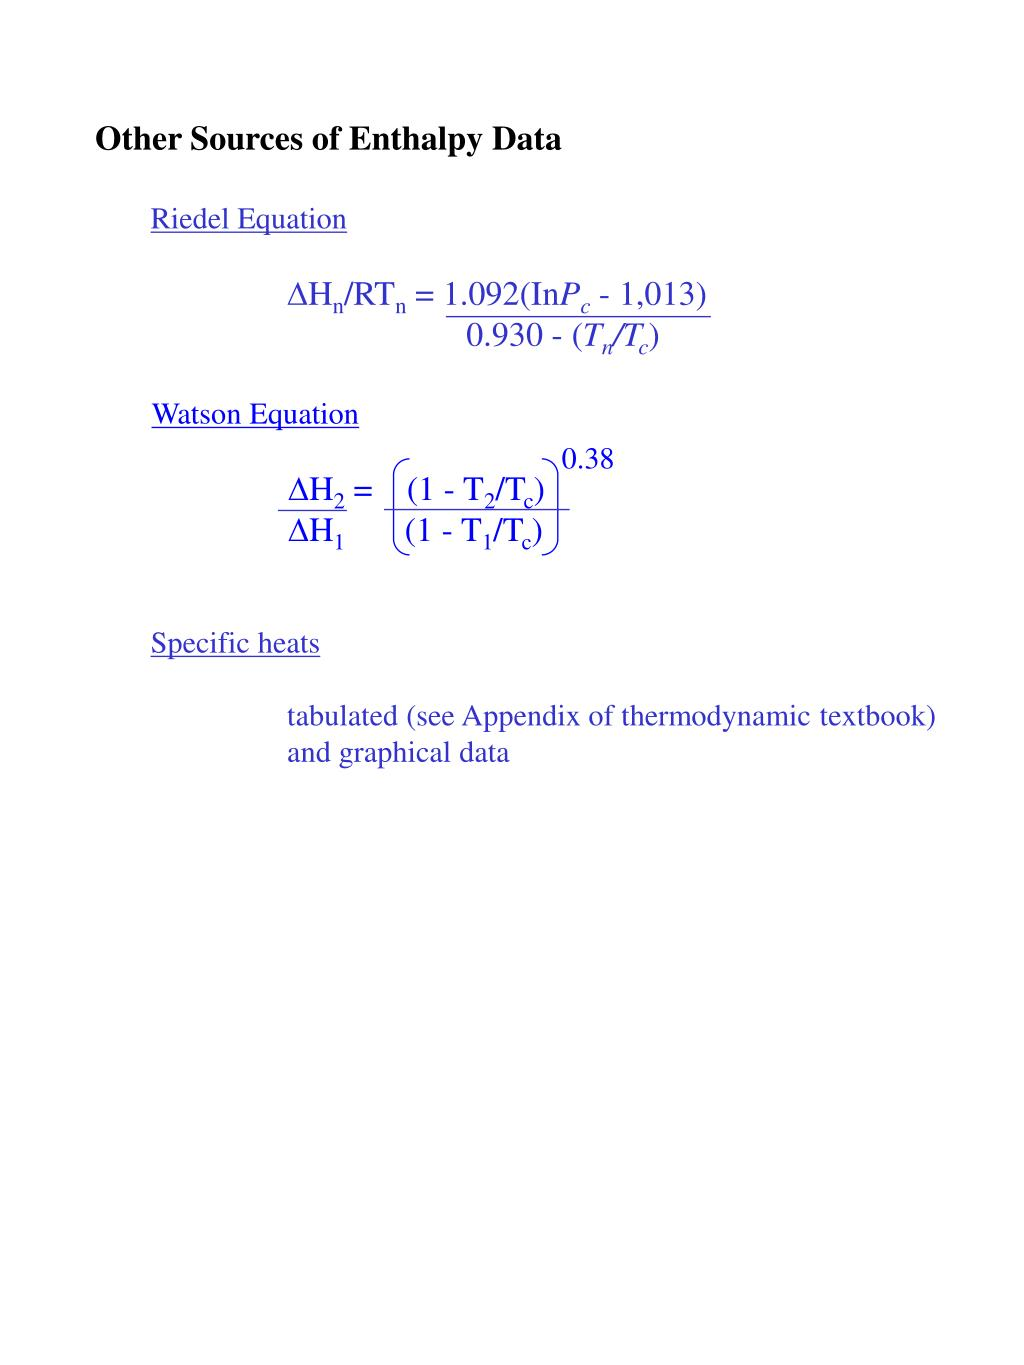 Riedel Equation